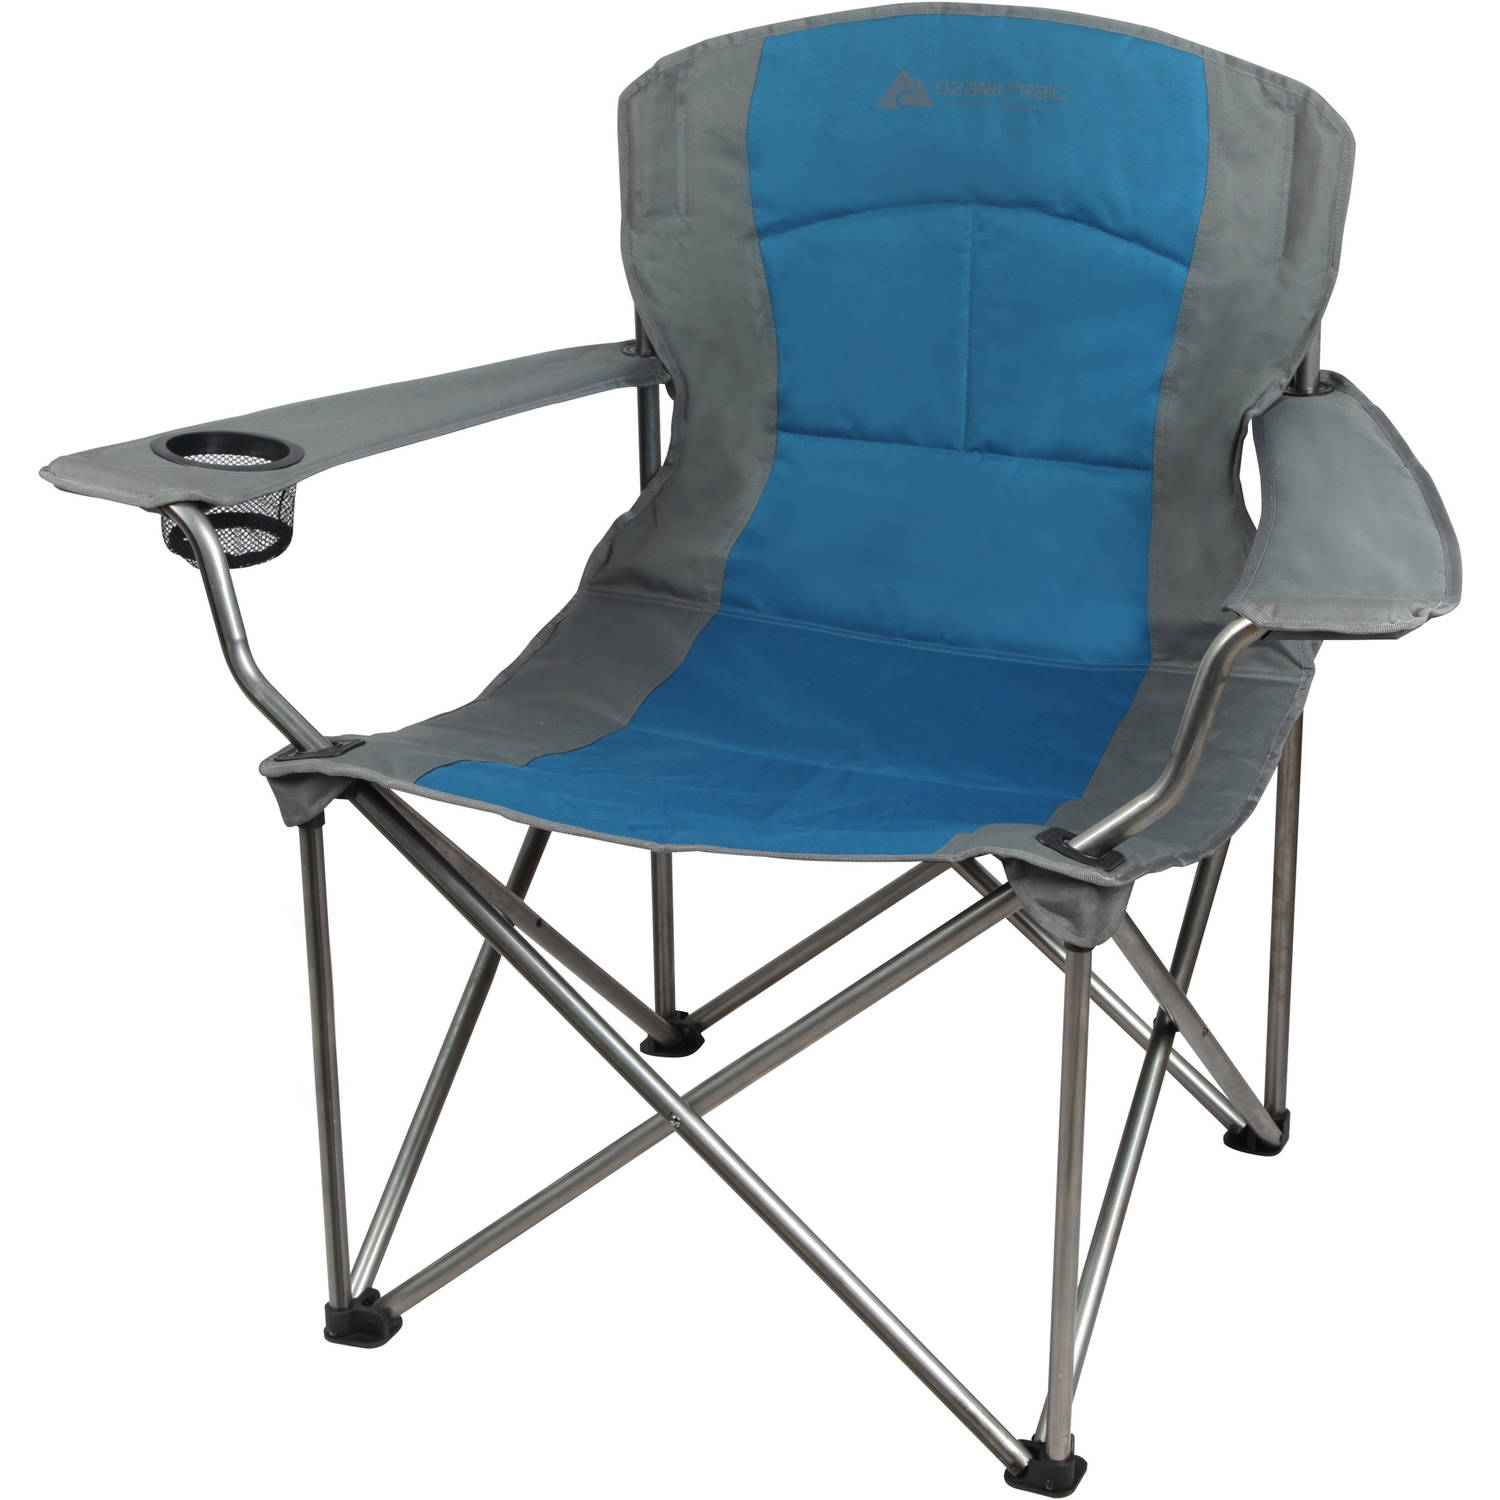 Ozark Trail Oversized Big Boy Quad Chair, Blue